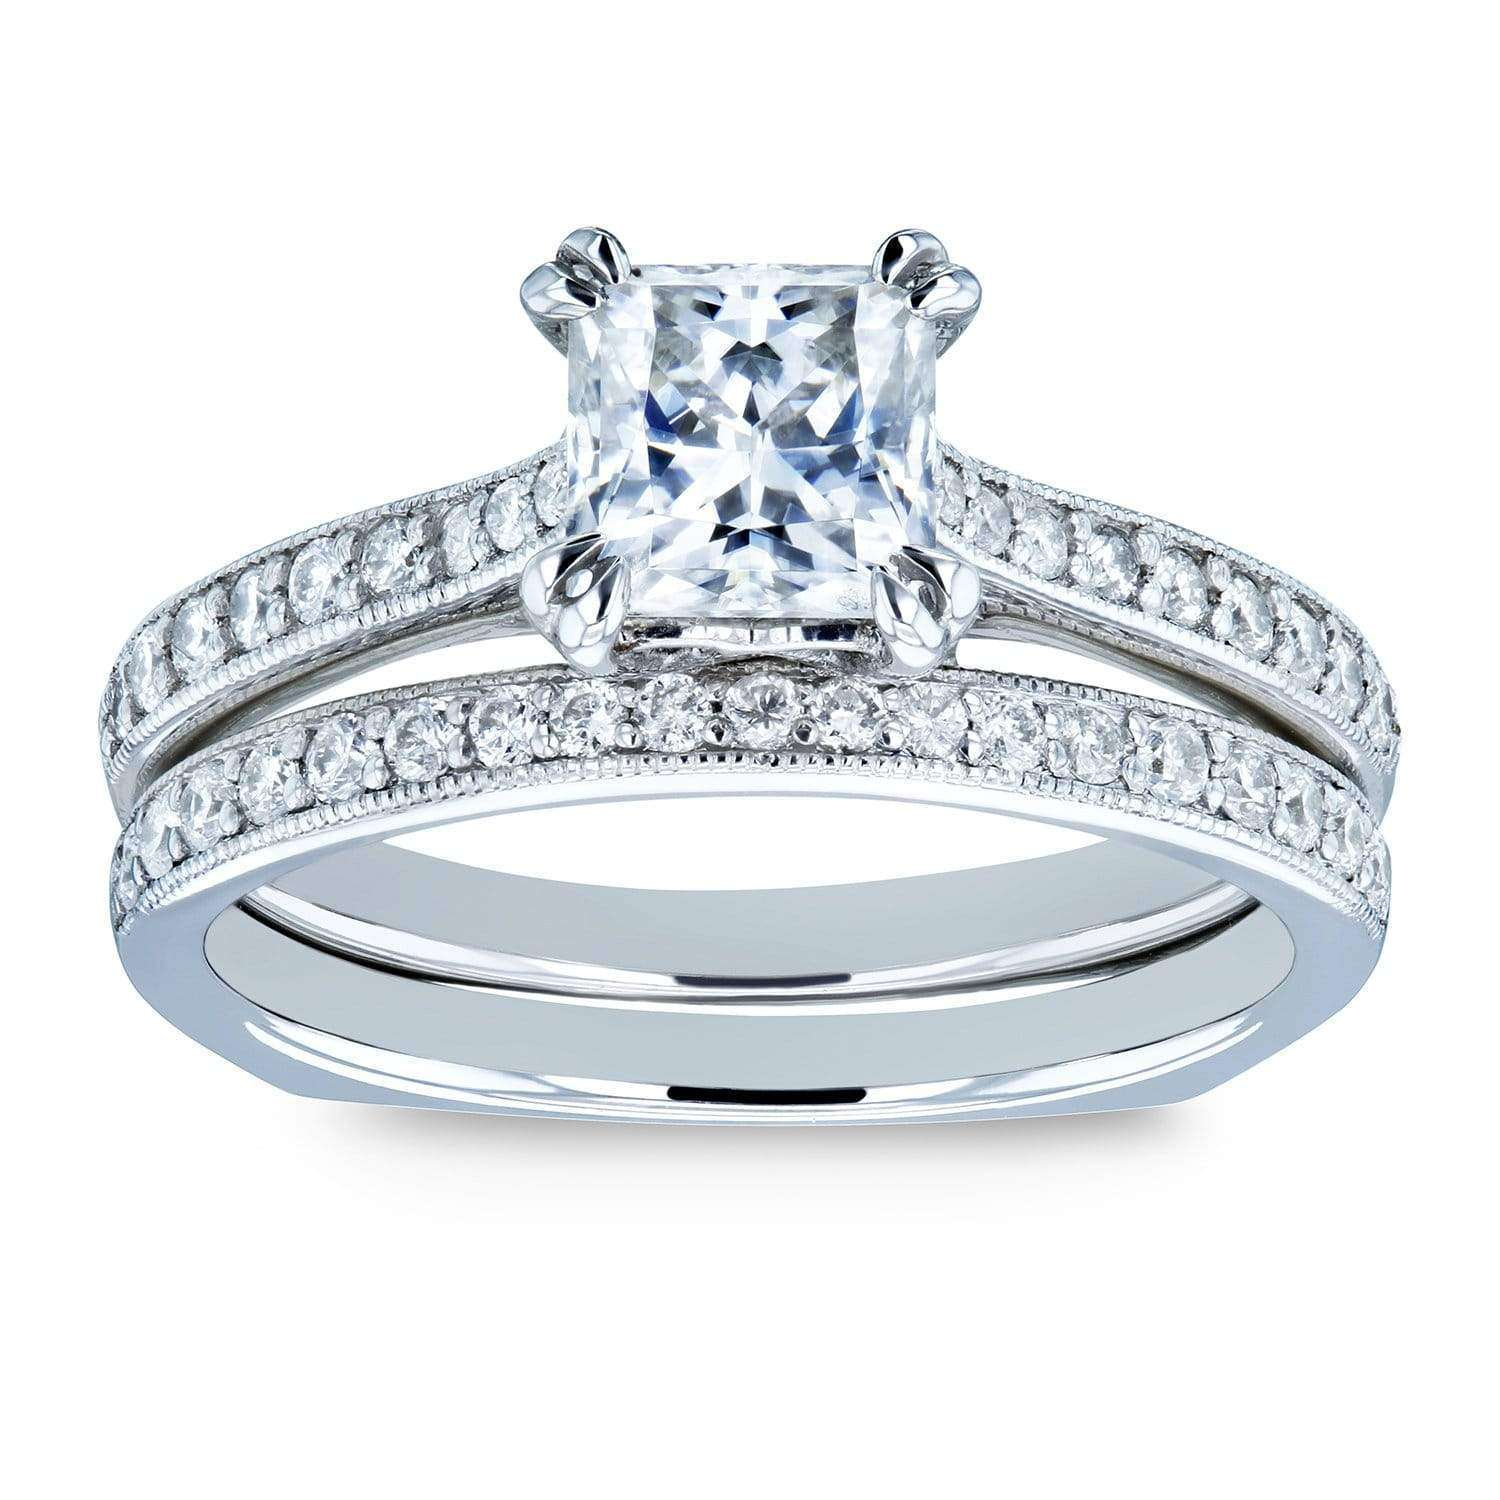 Discounts Princess Moissanite and Diamond Square Shank Trellis Wedding Rings 1 1/3 CTW 14k White Gold (FG/VS GH/I) - 10.5